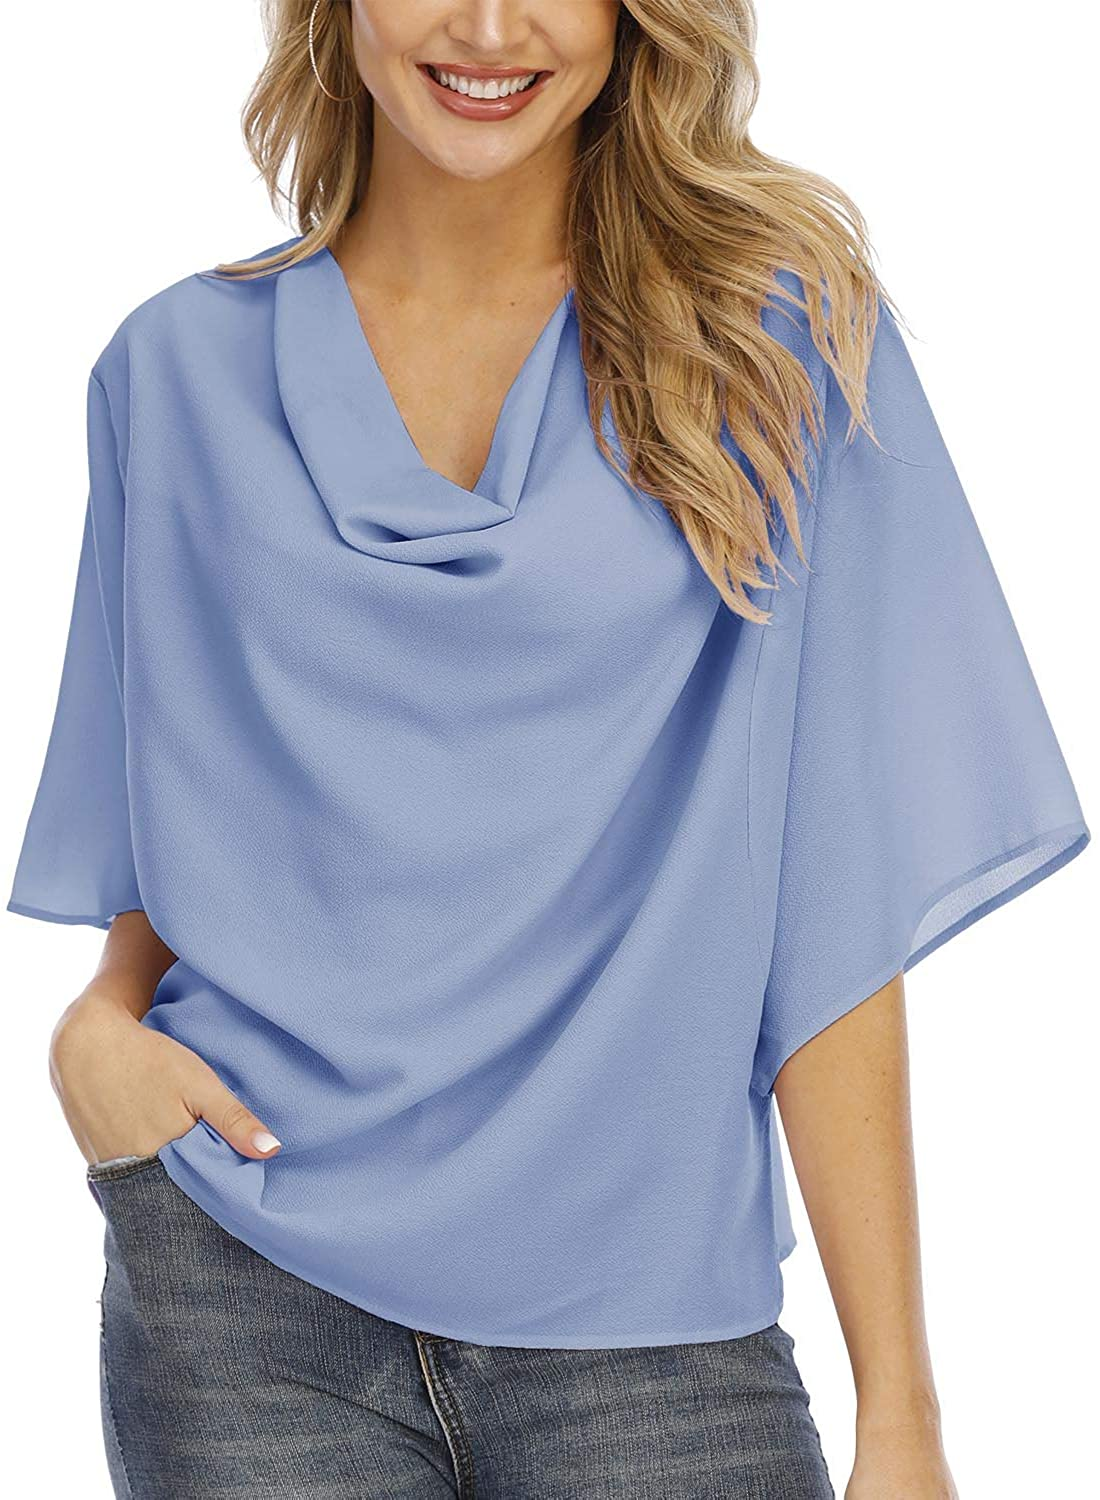 LVNES Womens Tops and Blouses for Work Summer V Neck Front Draped 3/4 Sleeve Causal Shirt Crop Top